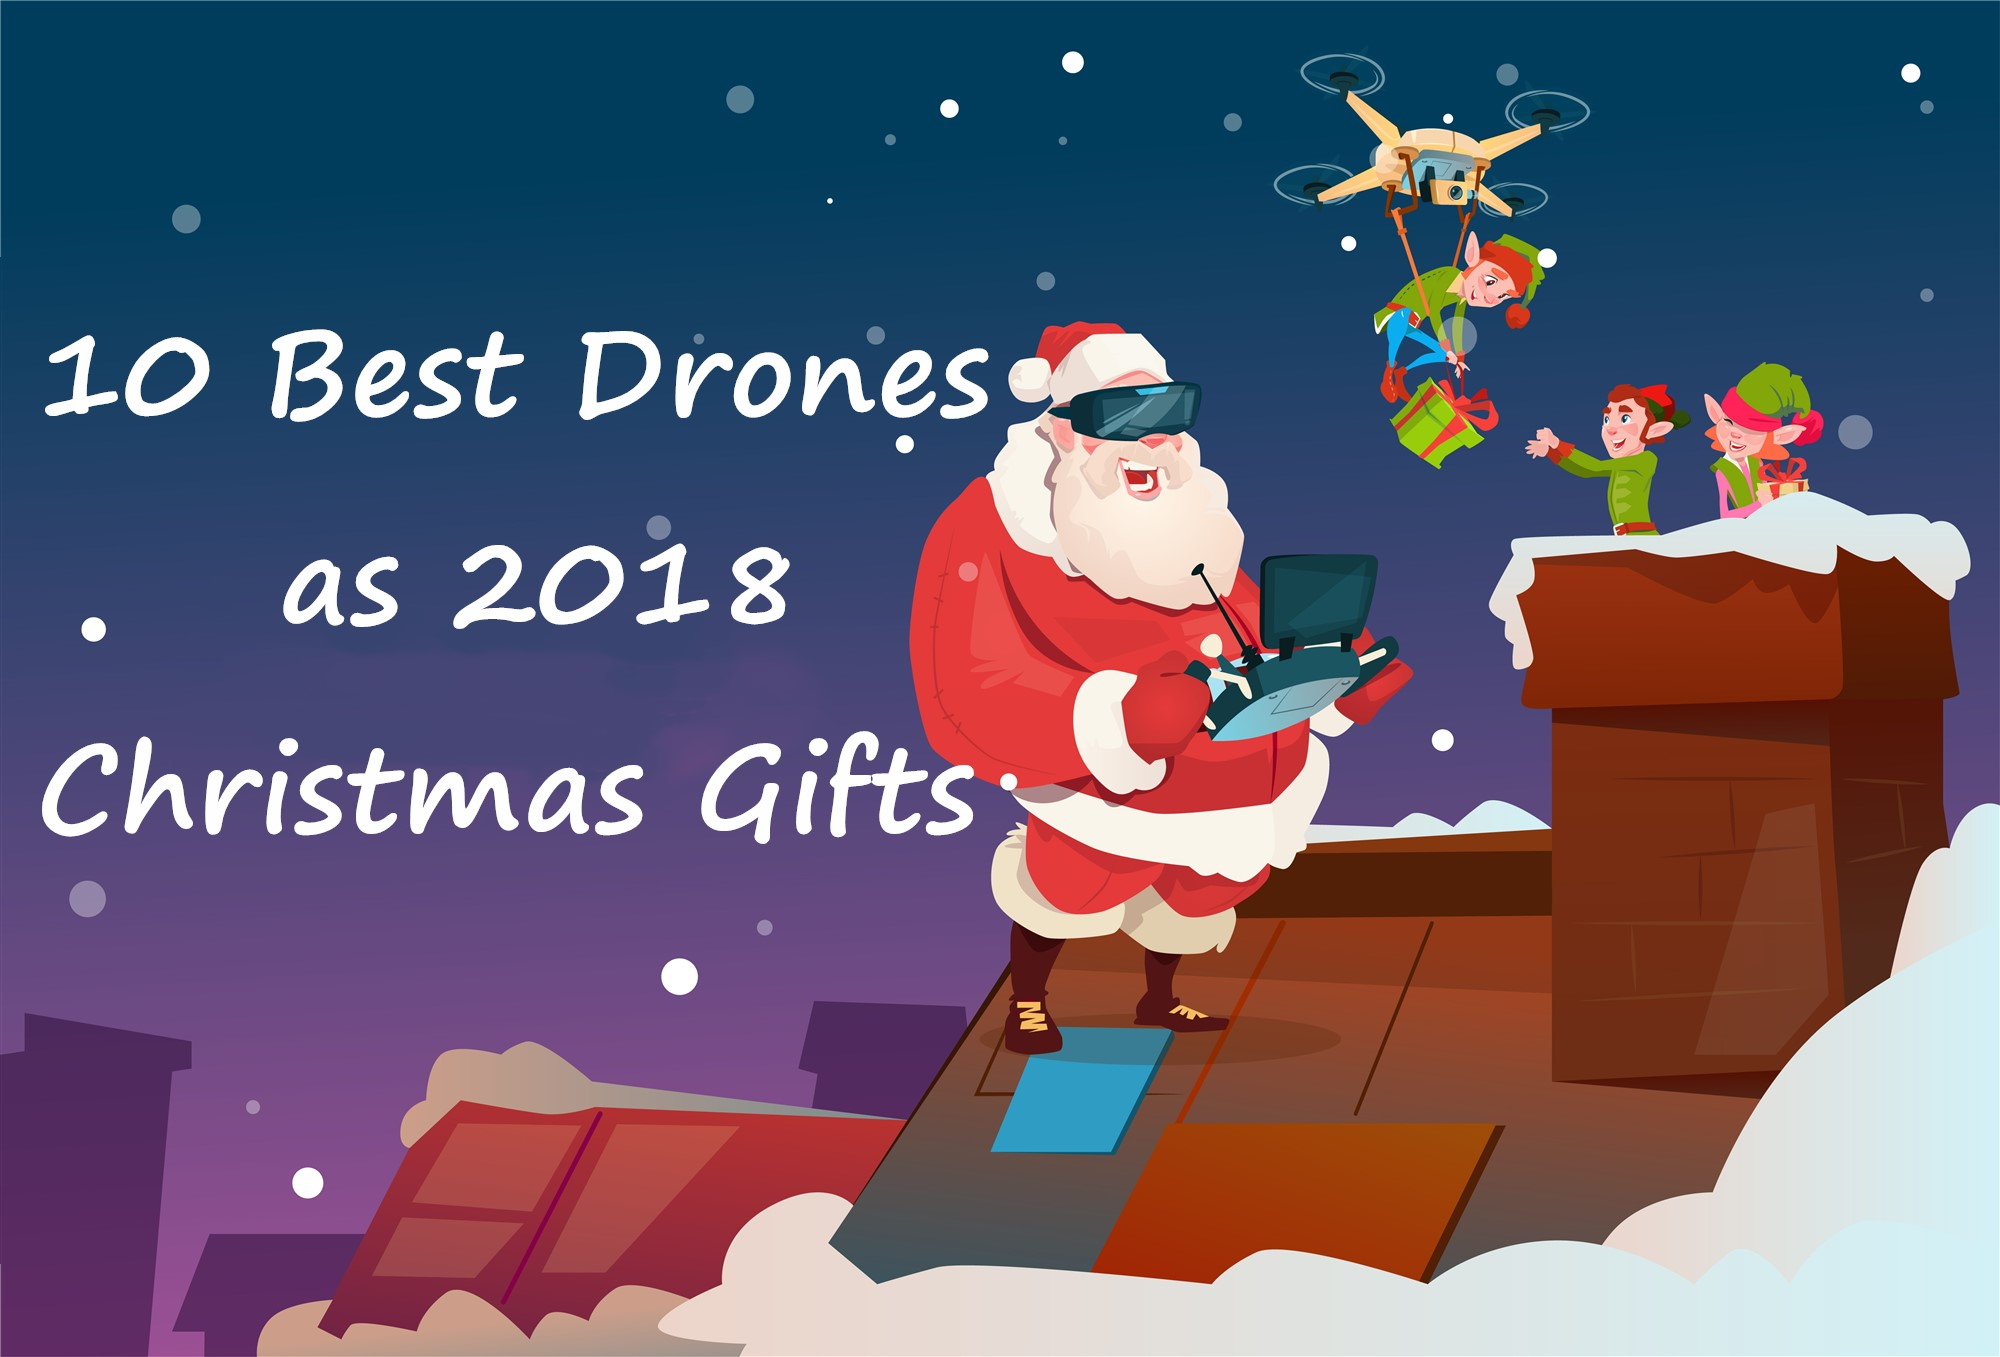 10 Best Drones as 2018 Christmas Gifts